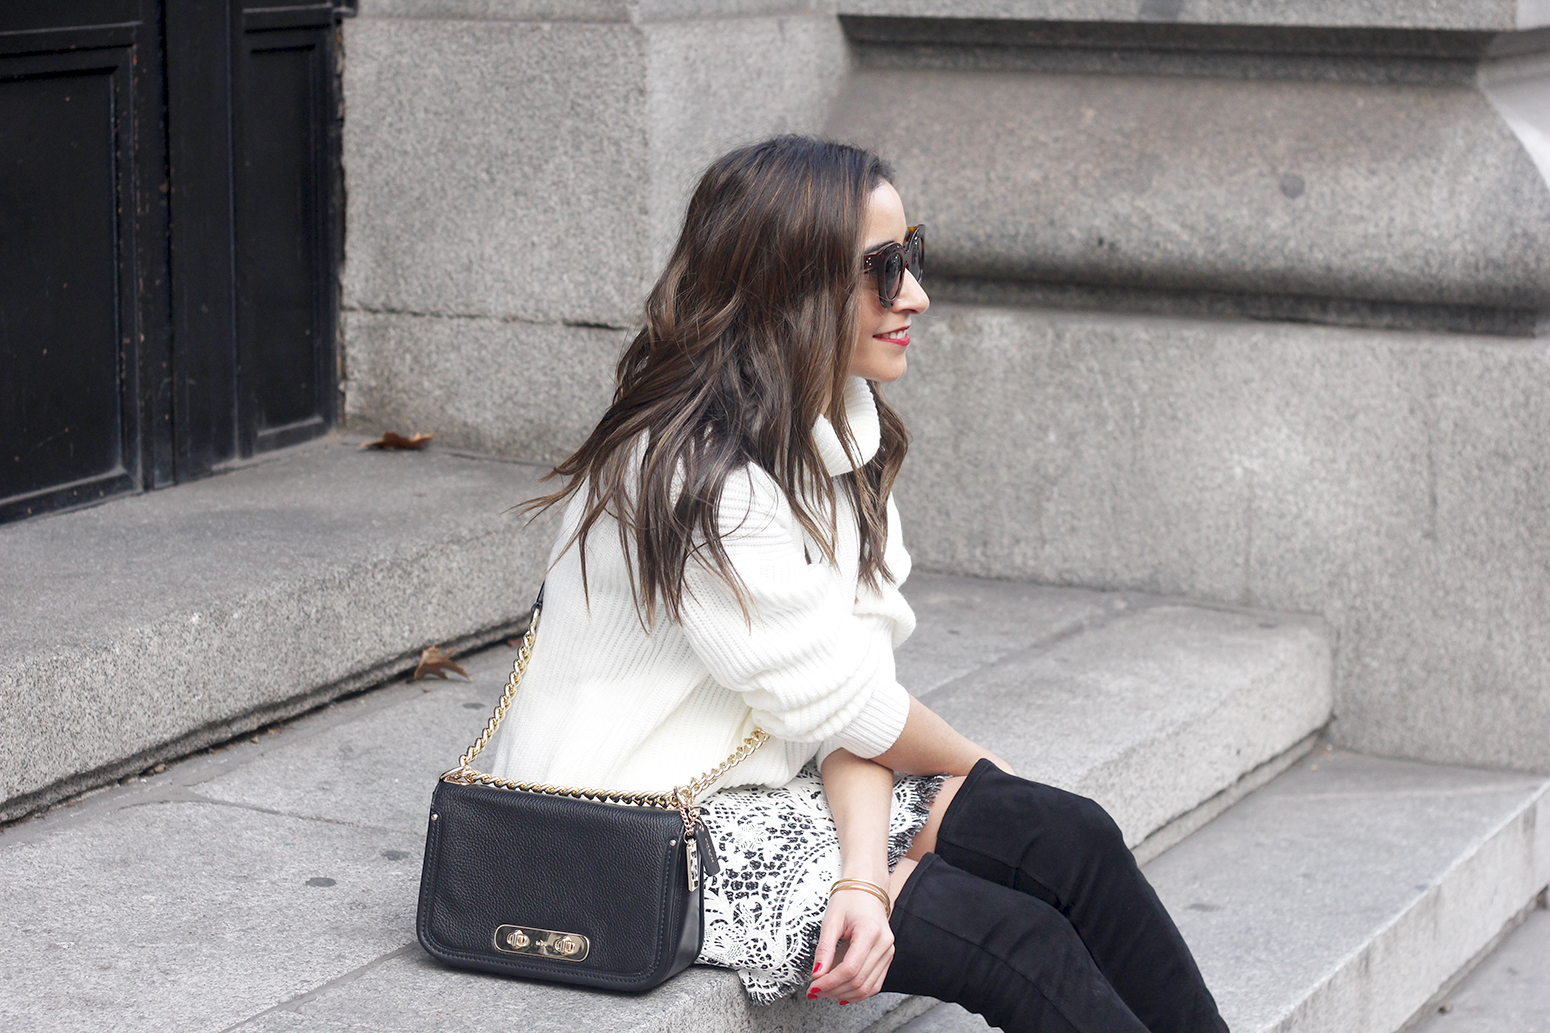 black and white lace skirt over the knee boots white turtleneck jersey outfit style winter13